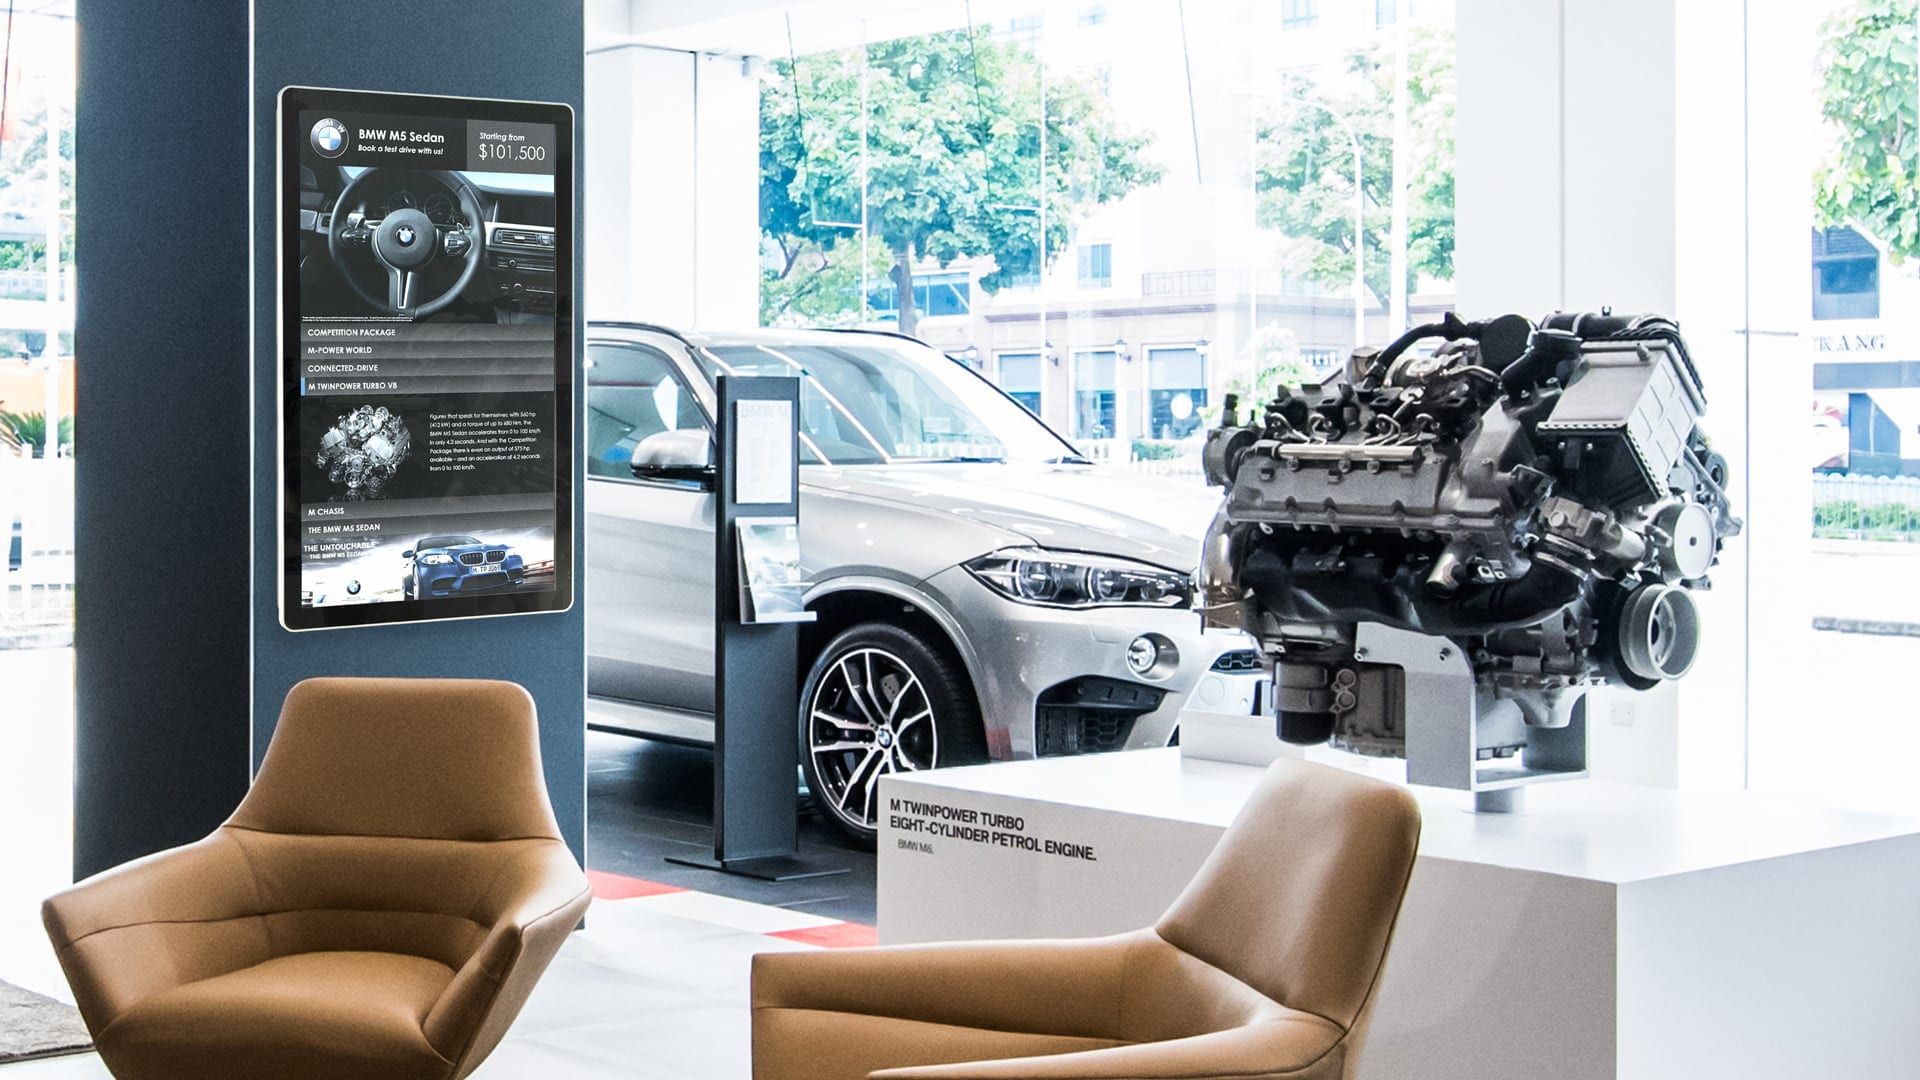 BMW auto dealer retail shop with sofa chairs and white bmw suv